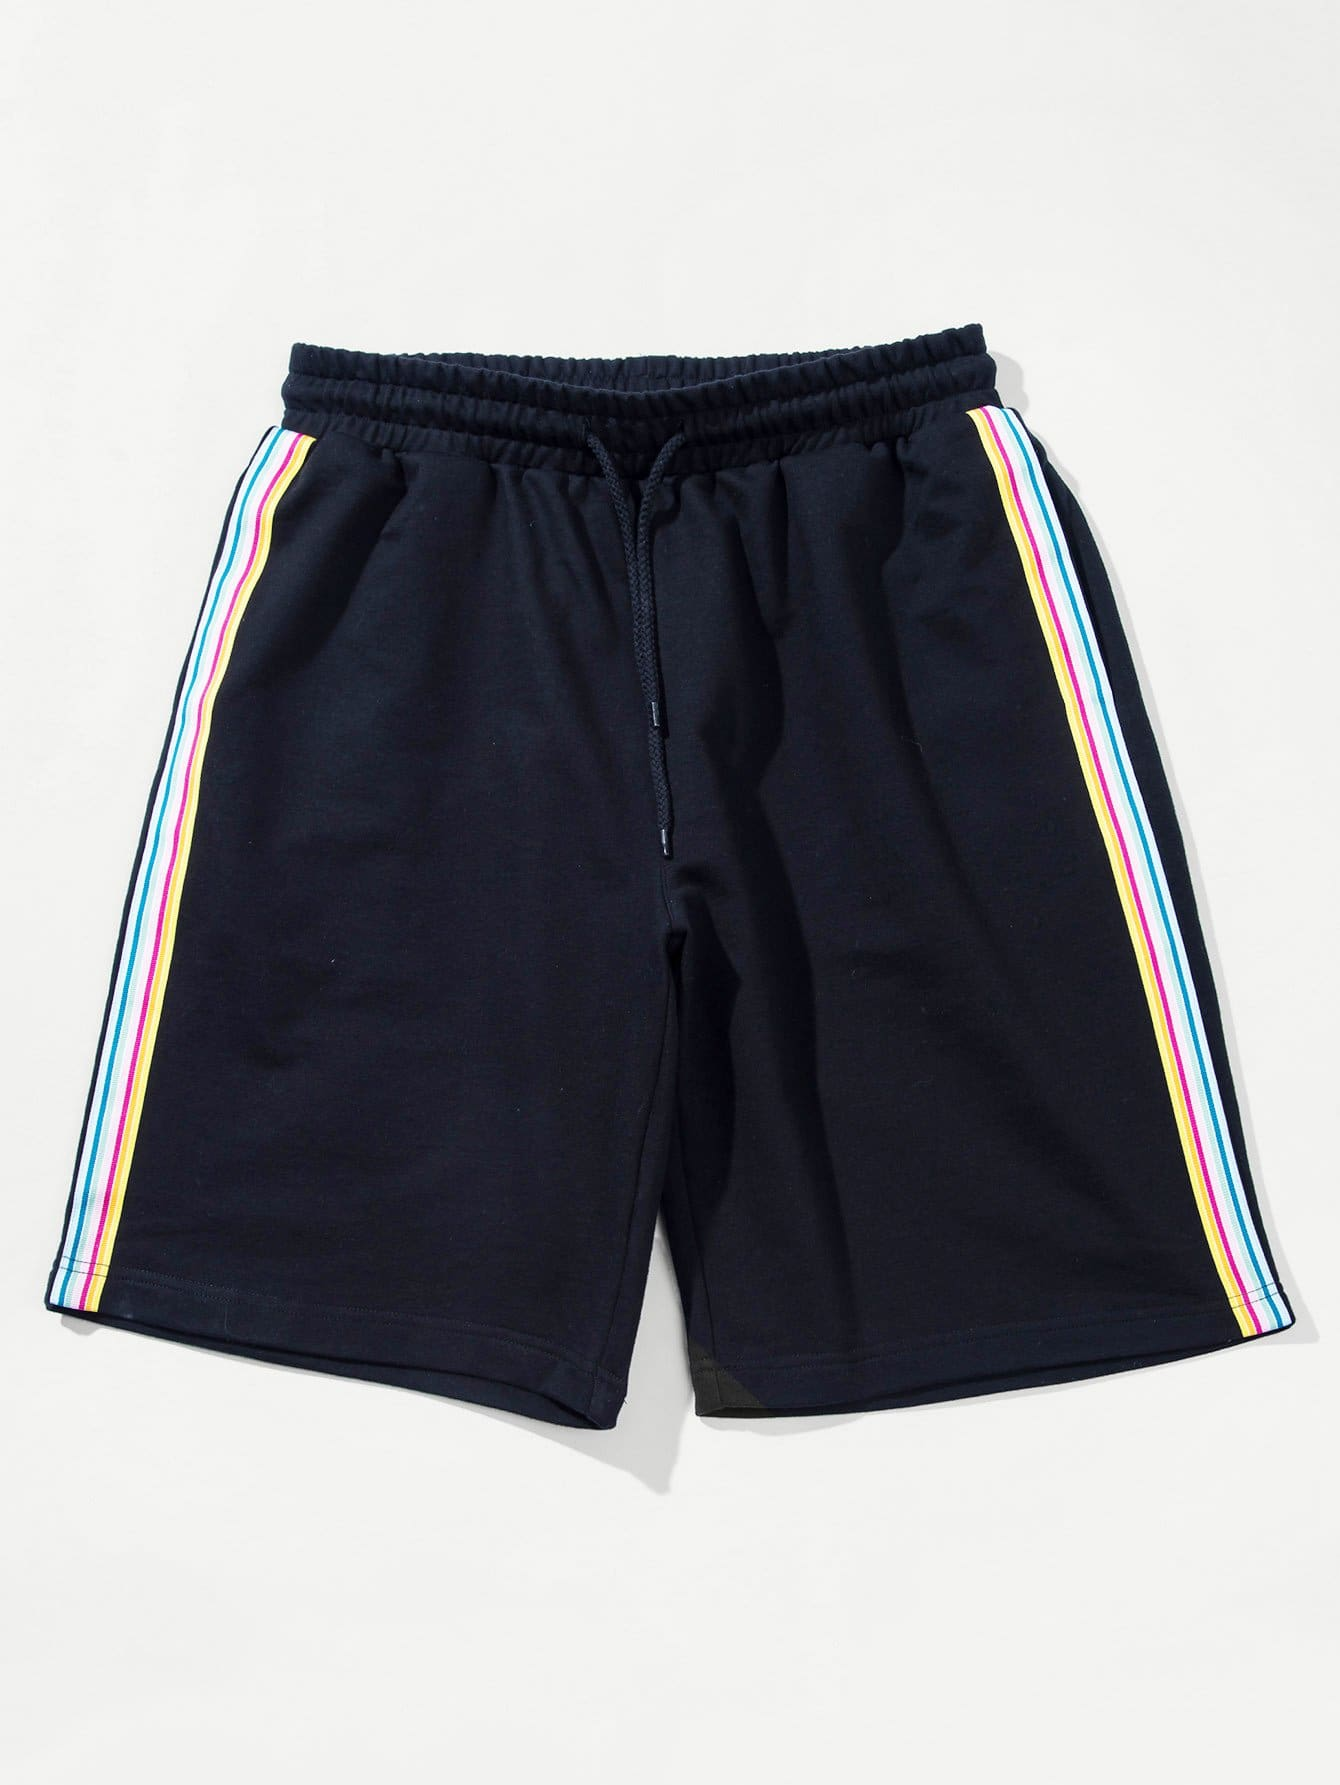 Men Striped Tape Side Drawstring Shorts striped tape side legging shorts